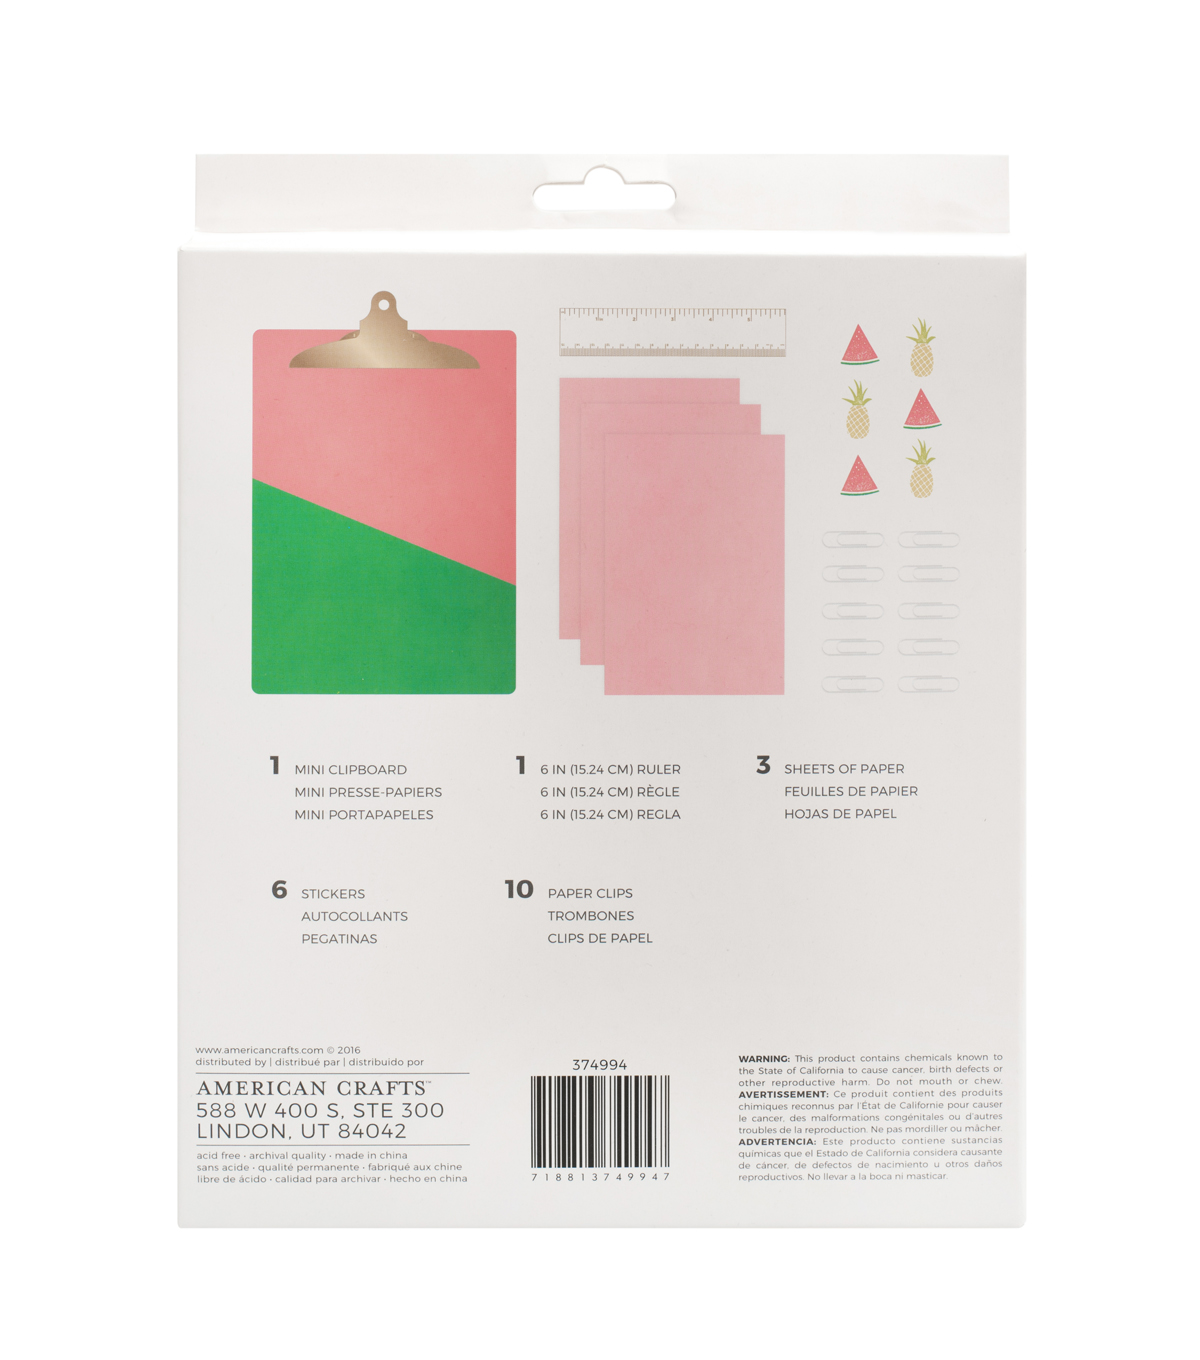 American Crafts Memory Planner Office Kit